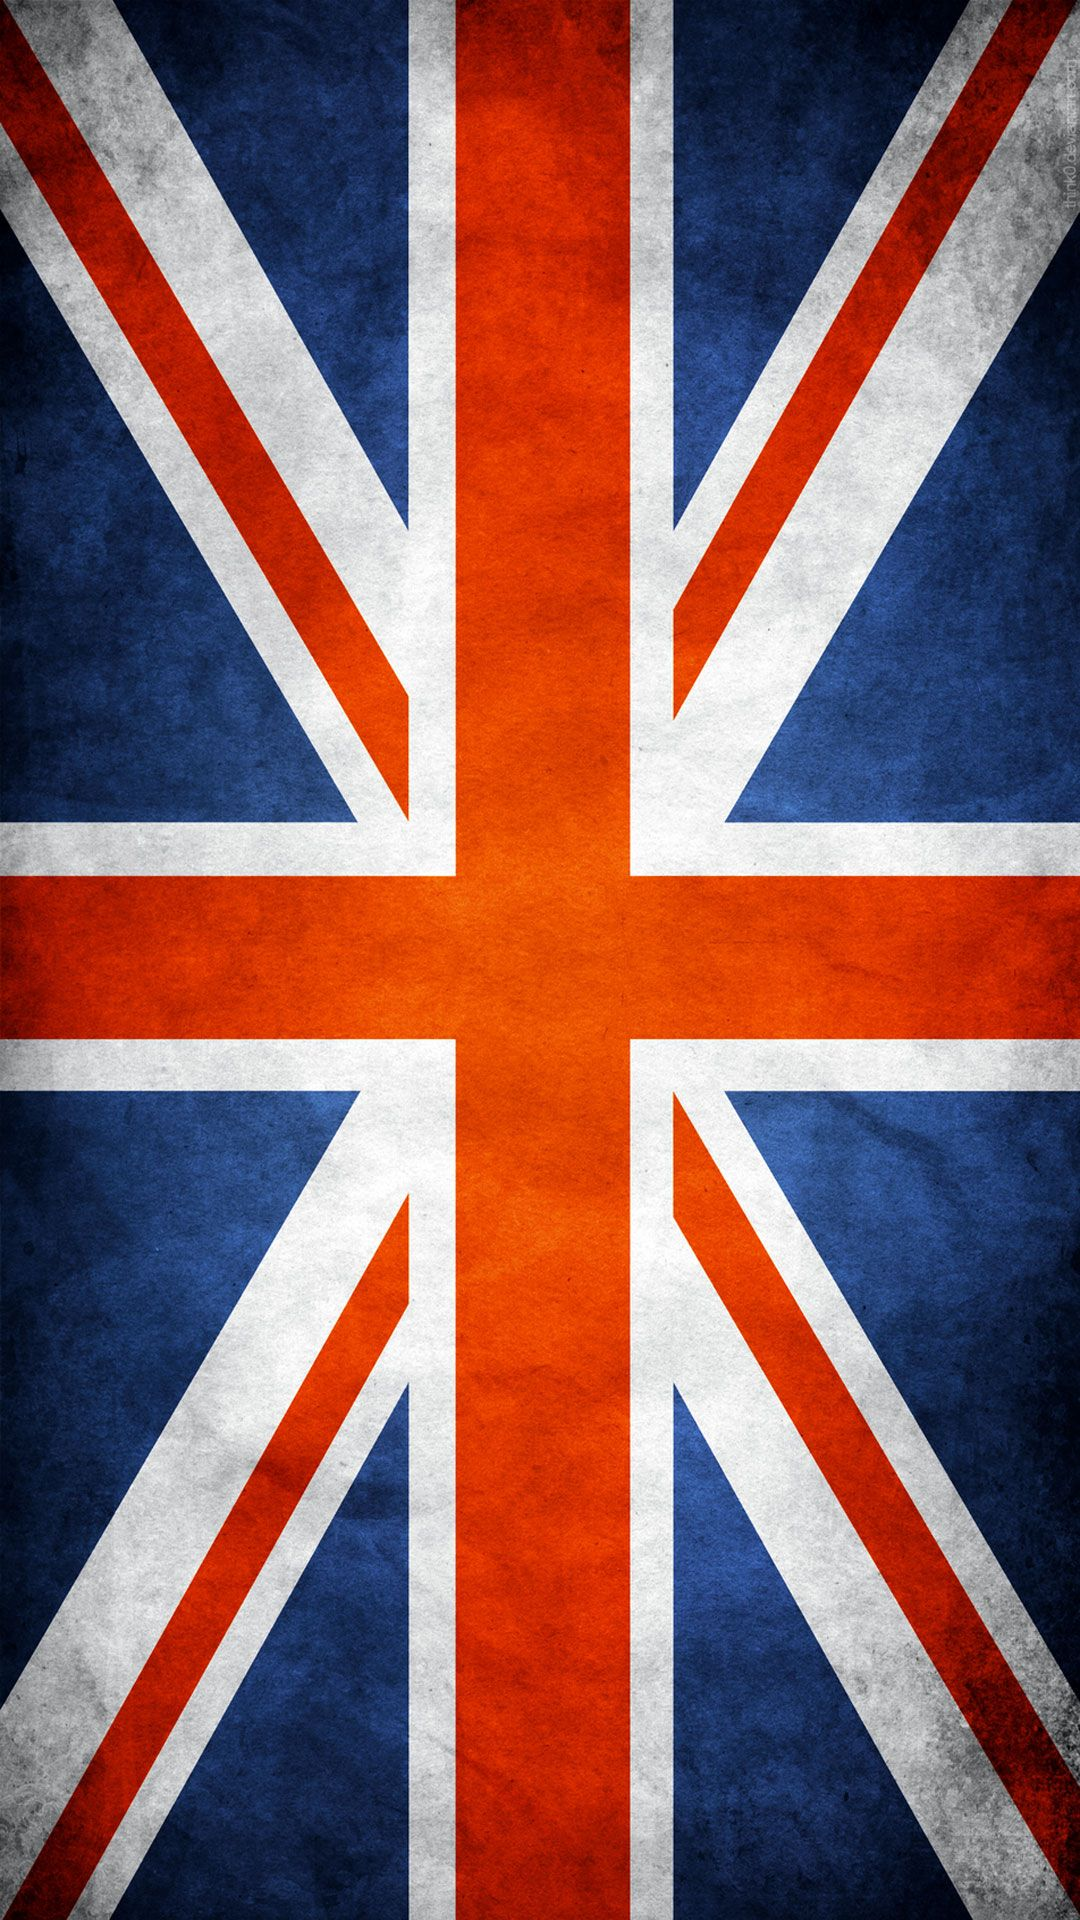 25 best cool iphone 6 plus wallpapers backgrounds in hd quality union jack 360 x 640 wallpapers 2695326 union jack flag united kingdom voltagebd Gallery